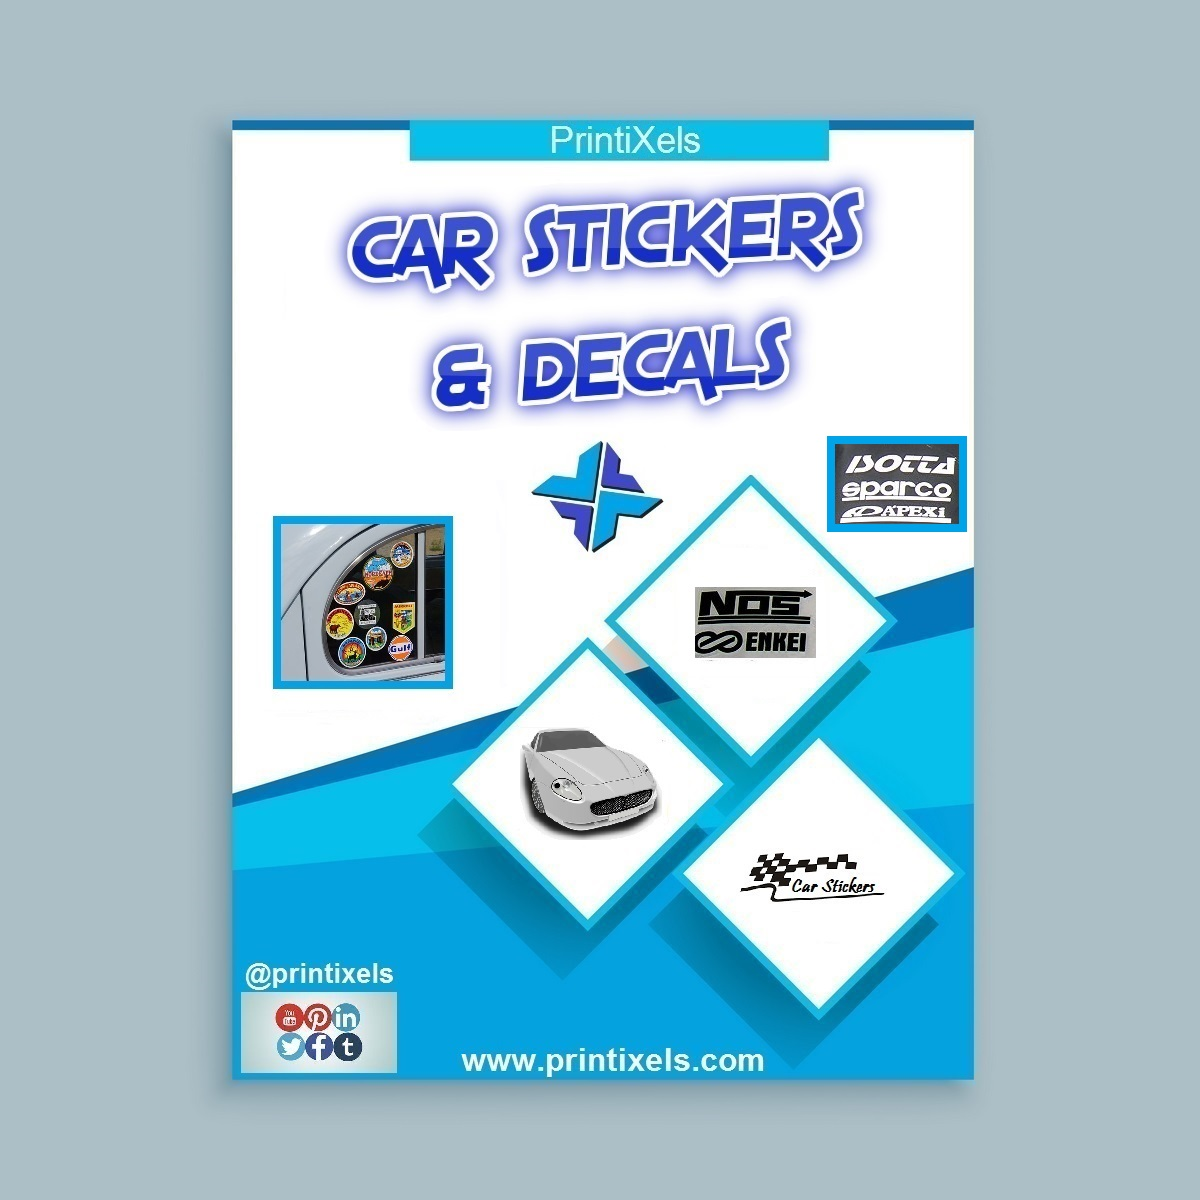 Customized car stickers decals